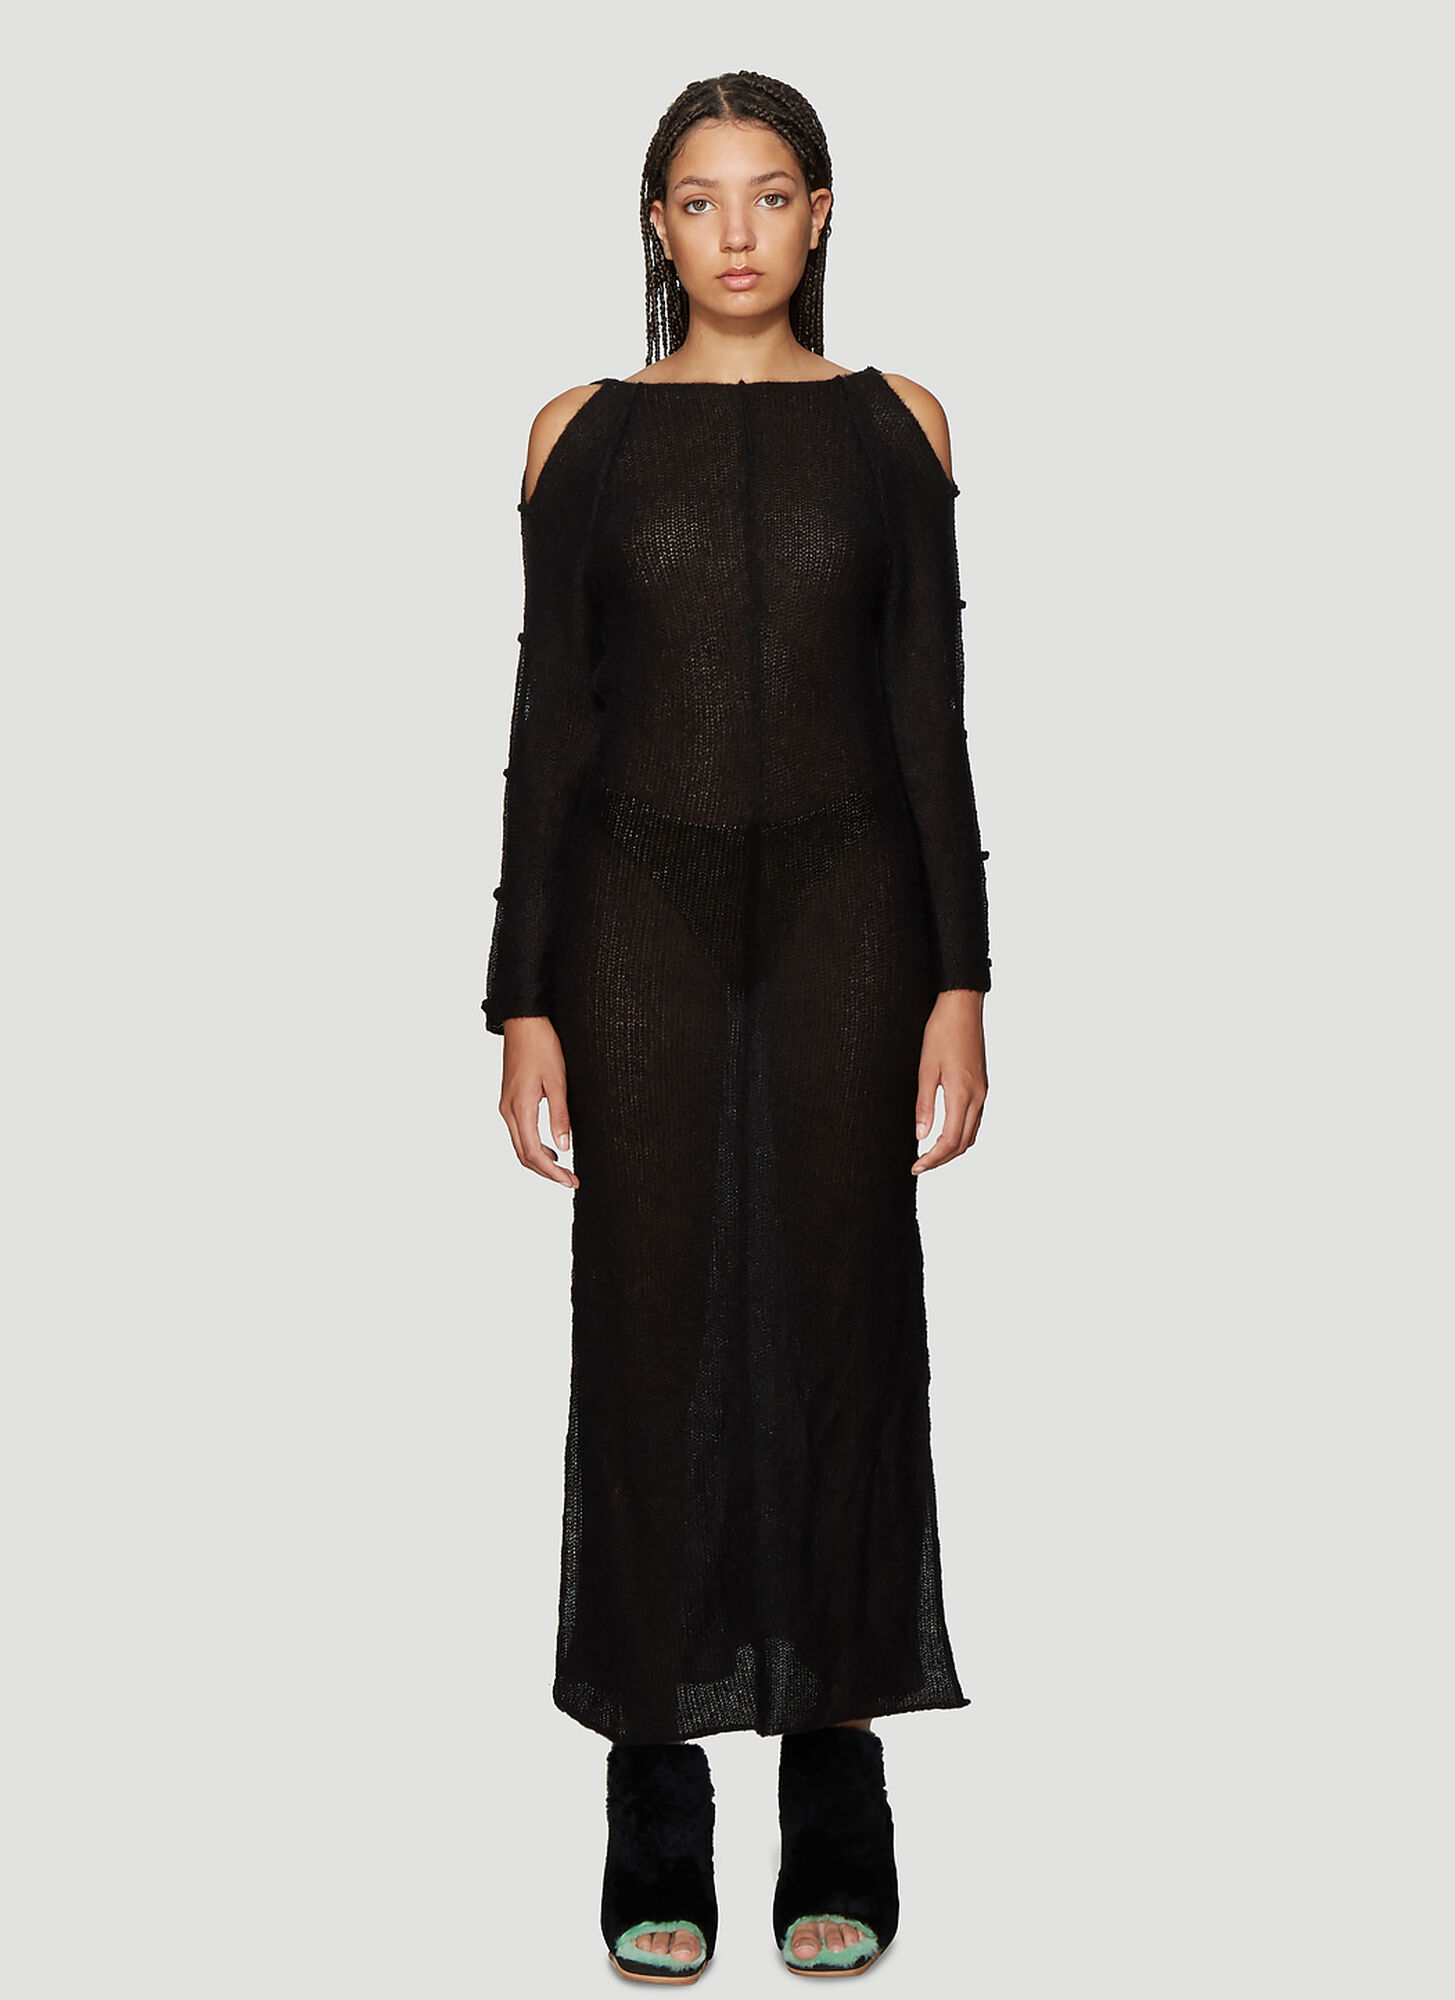 Eckhaus Latta Plunge Back Dress in Black